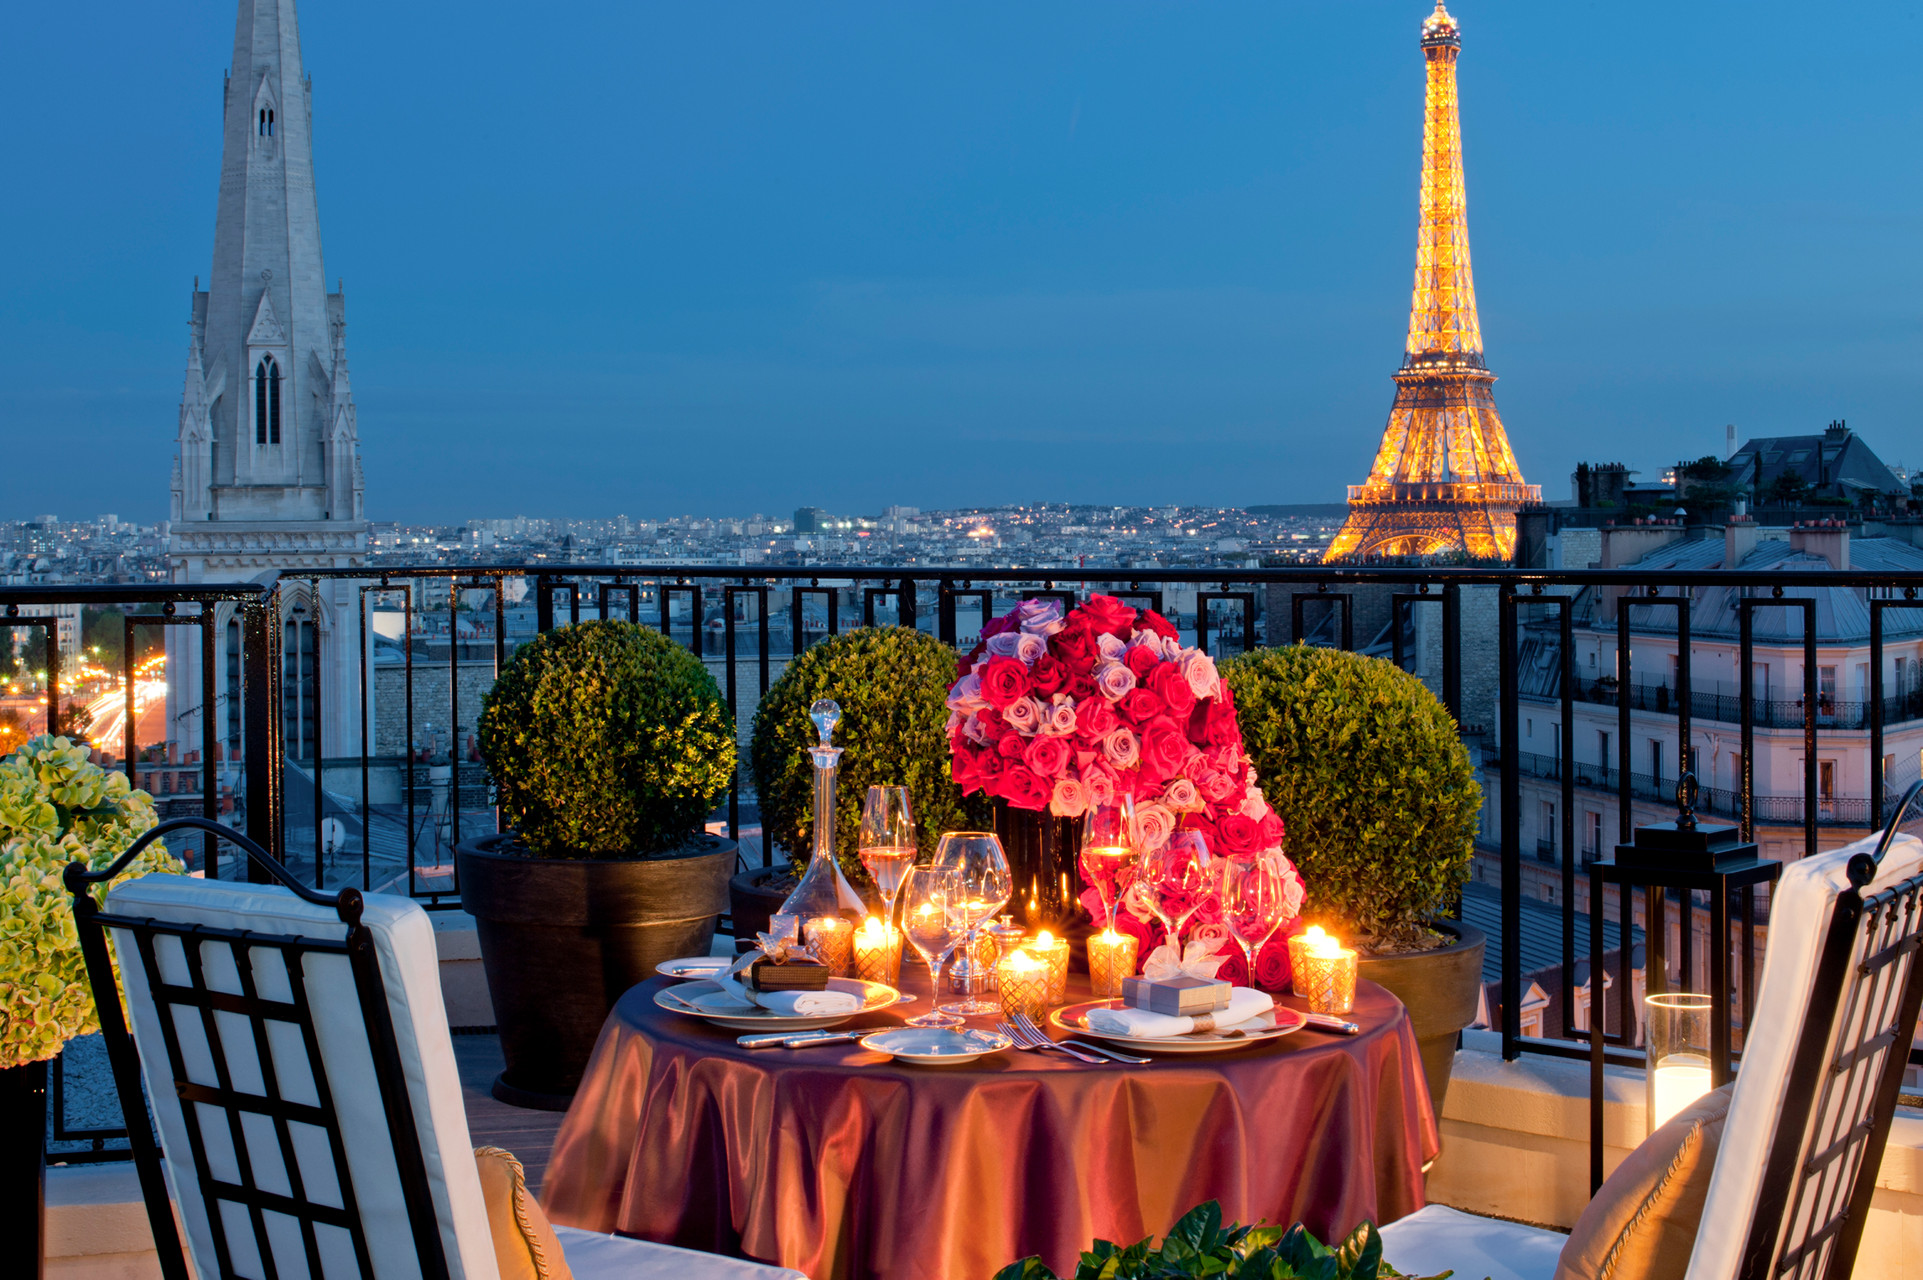 Luxury Travel: 5 Reasons Why Paris Should Be Your Next Destination best restaurants L'Haute Cuisine: best restaurants you can't miss in Paris! luxury travel reasons why paris next destination valentines day best restaurants L'Haute Cuisine: best restaurants you can't miss in Paris! luxury travel reasons why paris next destination valentines day